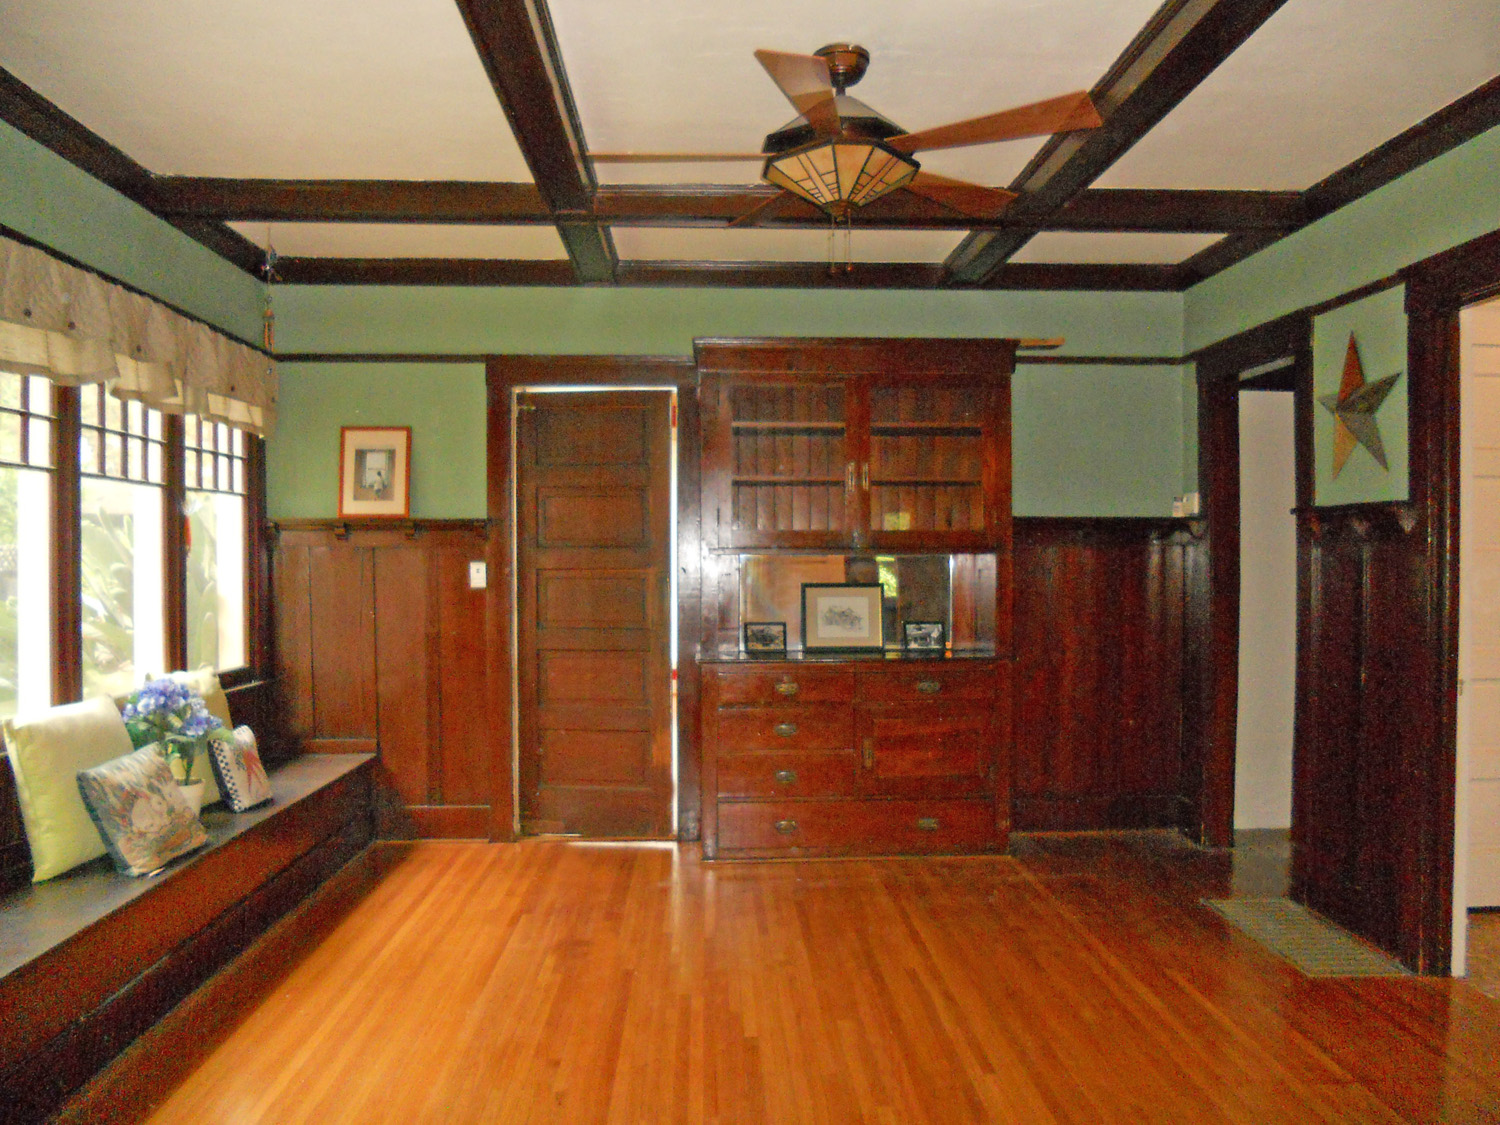 Formal dining room with plate rails, coffered ceiling, built-in hutch, large window seat and gorgeous original windows!